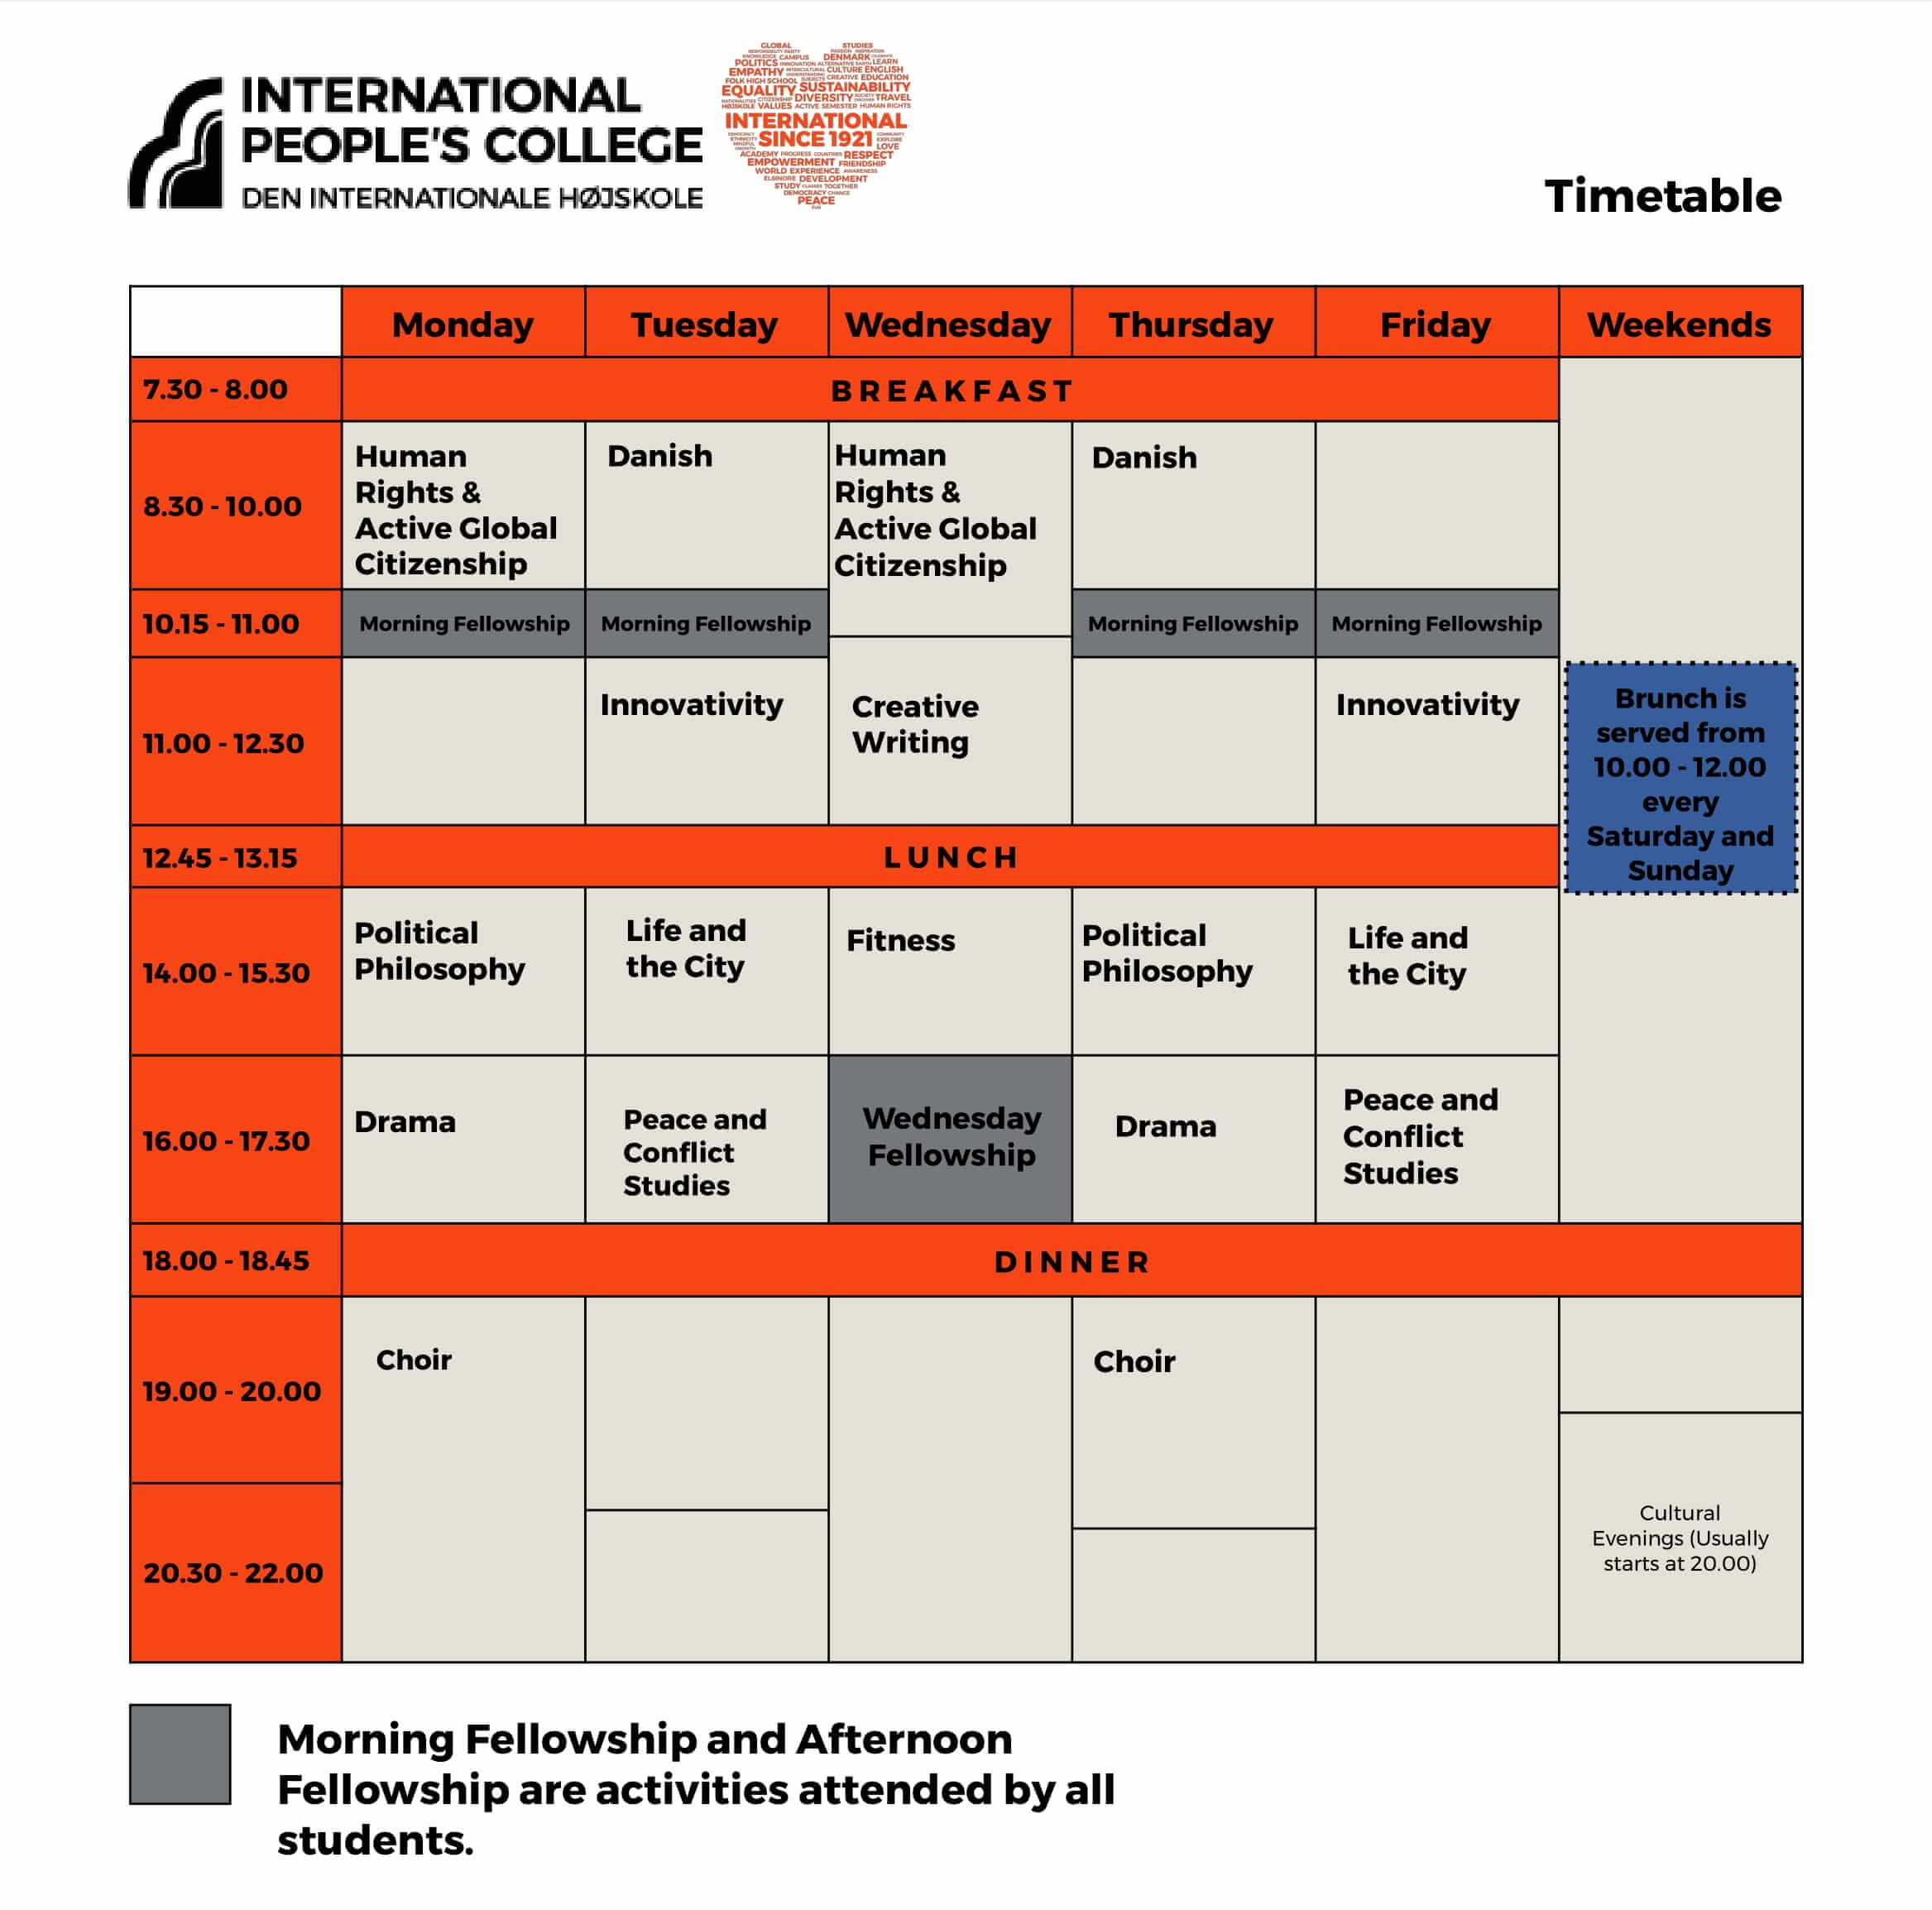 examples of folk high school timetables at international people s